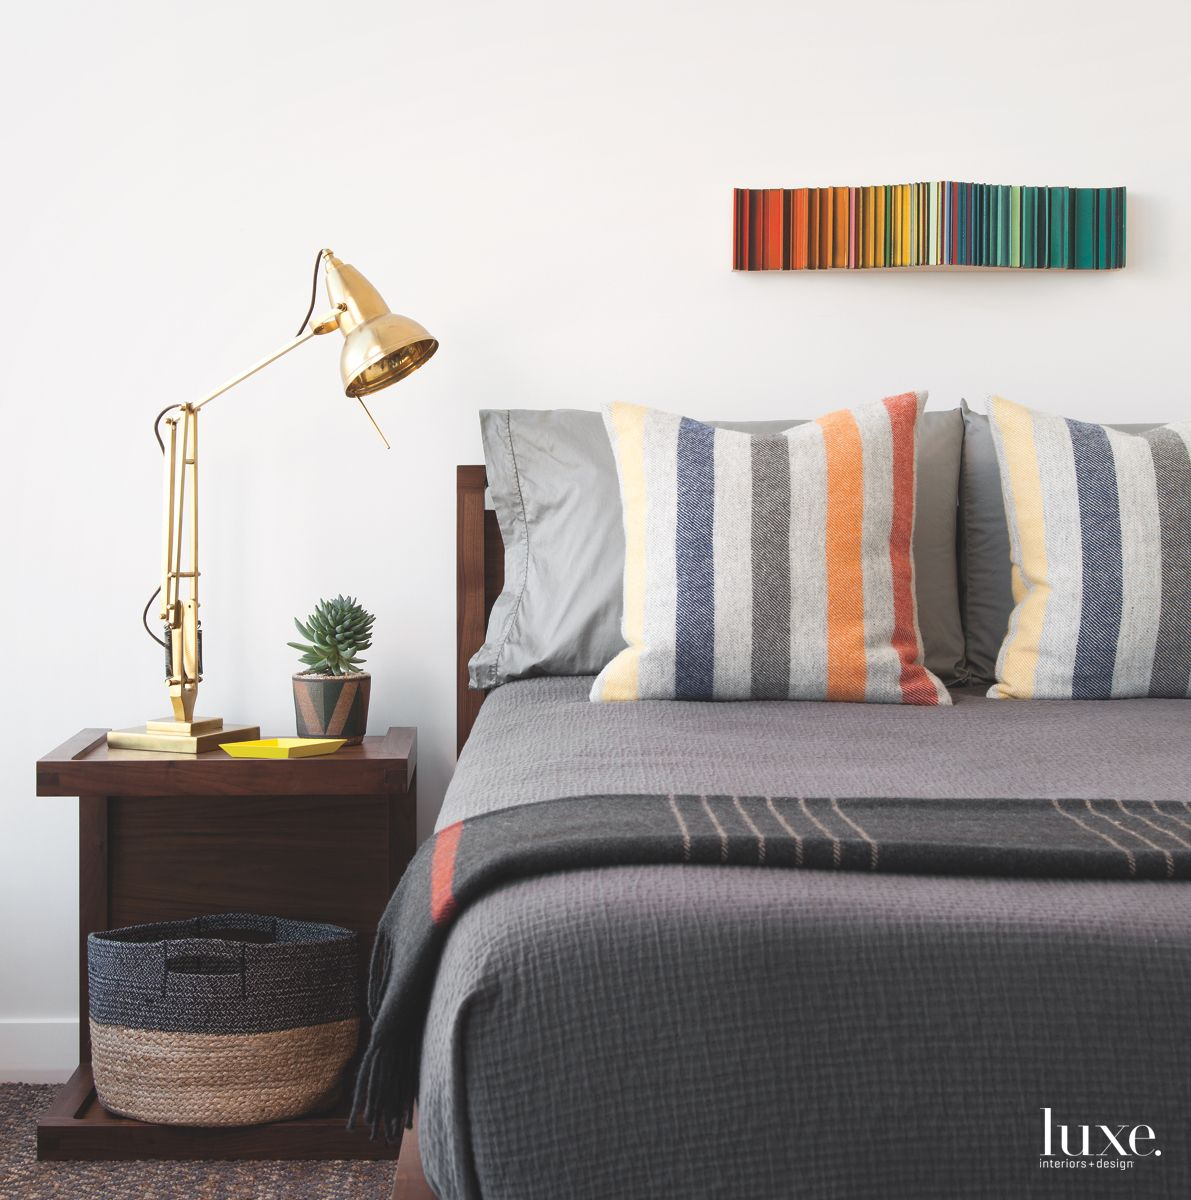 Colorful Wood Artwork Above a Master Bedroom Plush Bed with Lamp